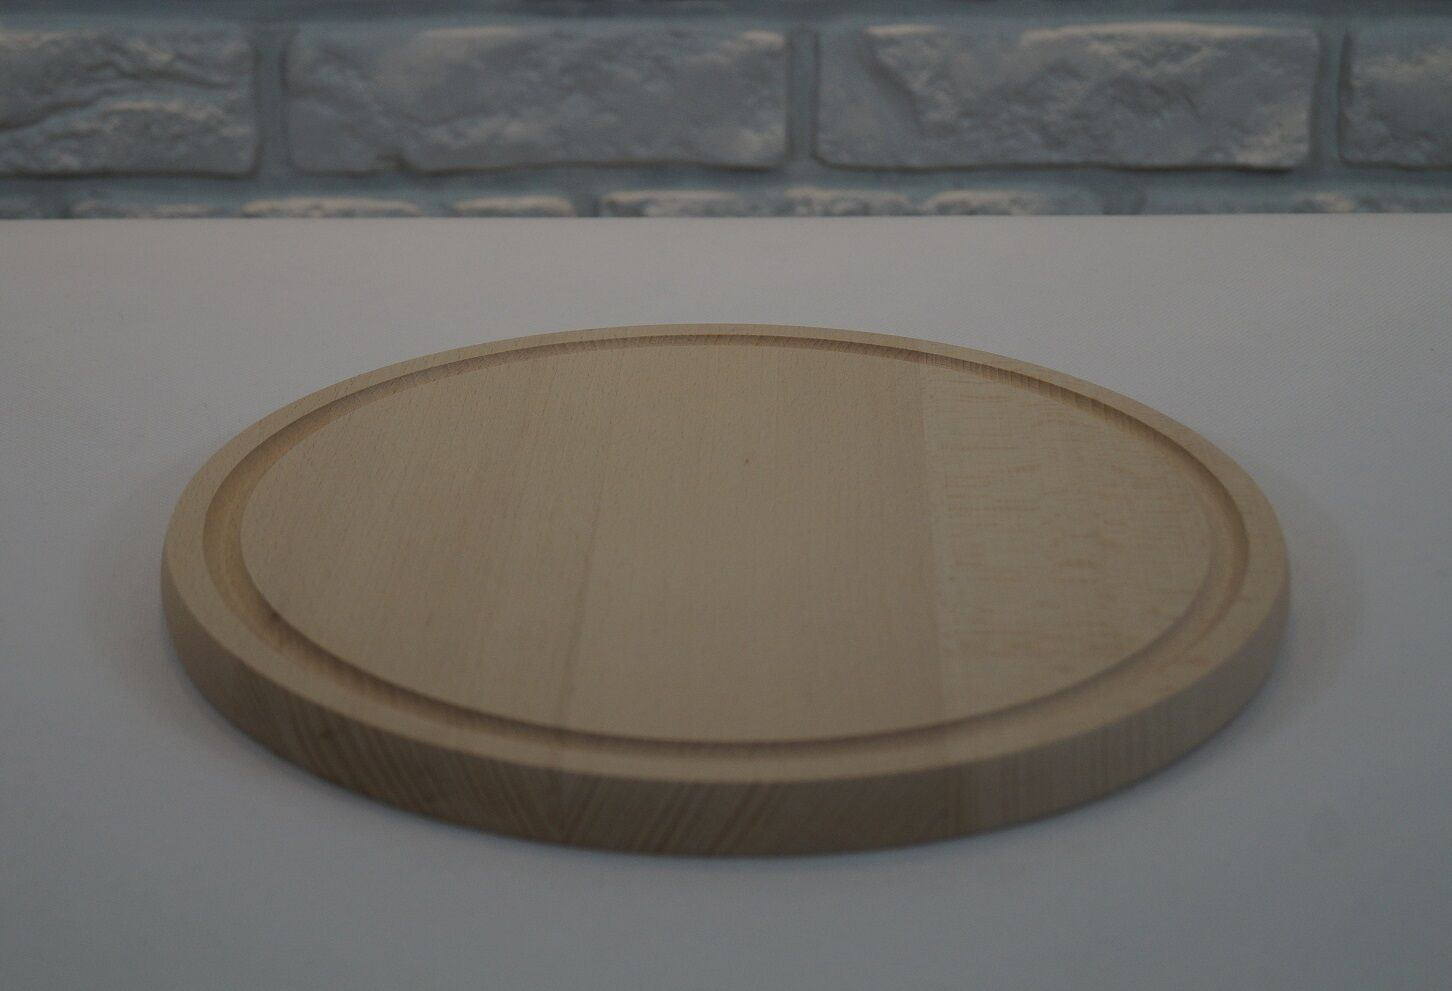 Round Wooden Cutting Chopping Board 1.8 x 28 cm, set of 1, 10, 30